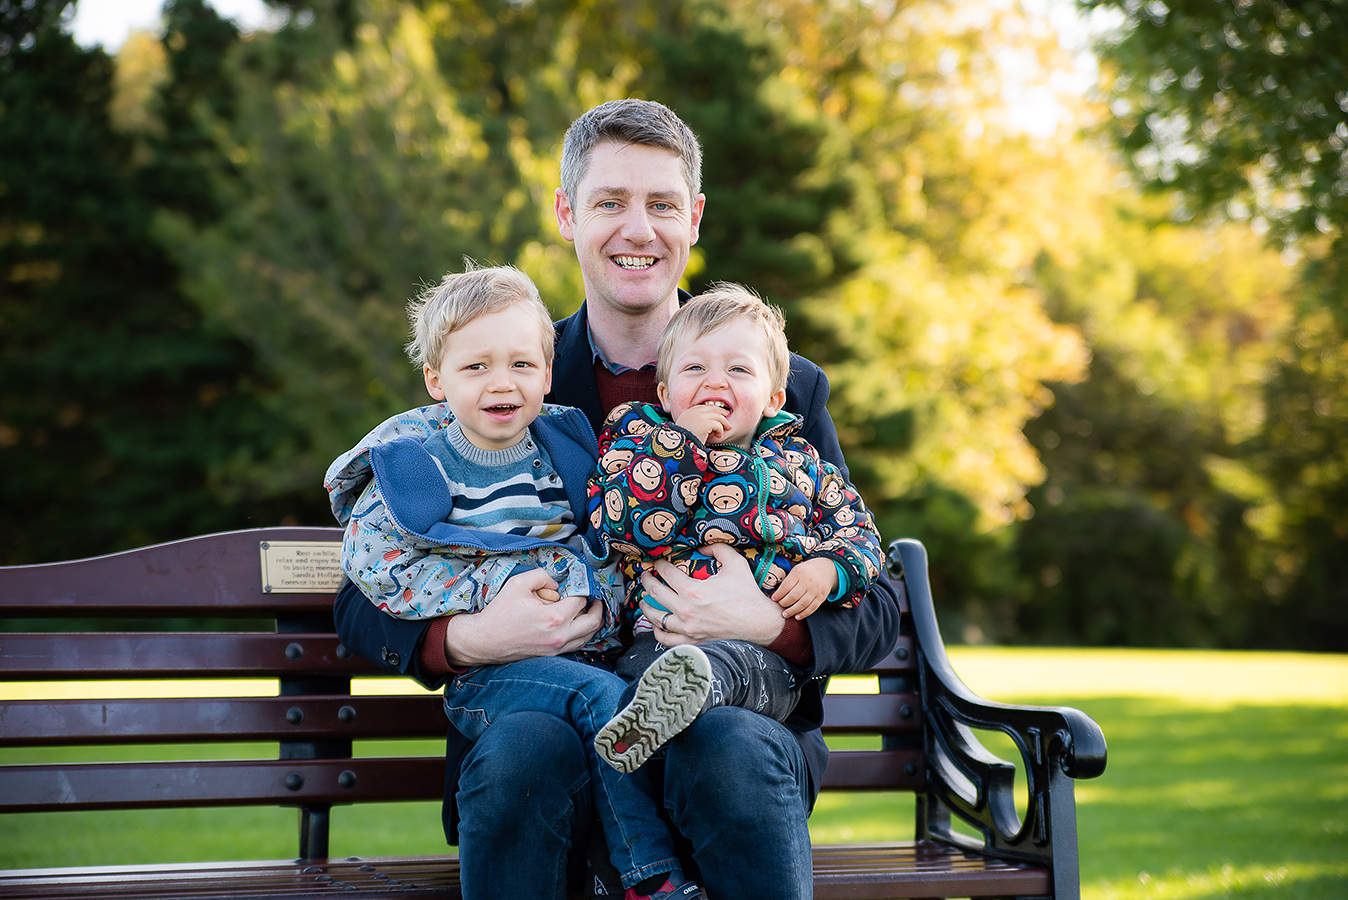 Dad and sons - Family Photoshoot at Marlay Park in Dublin by Camila Lee